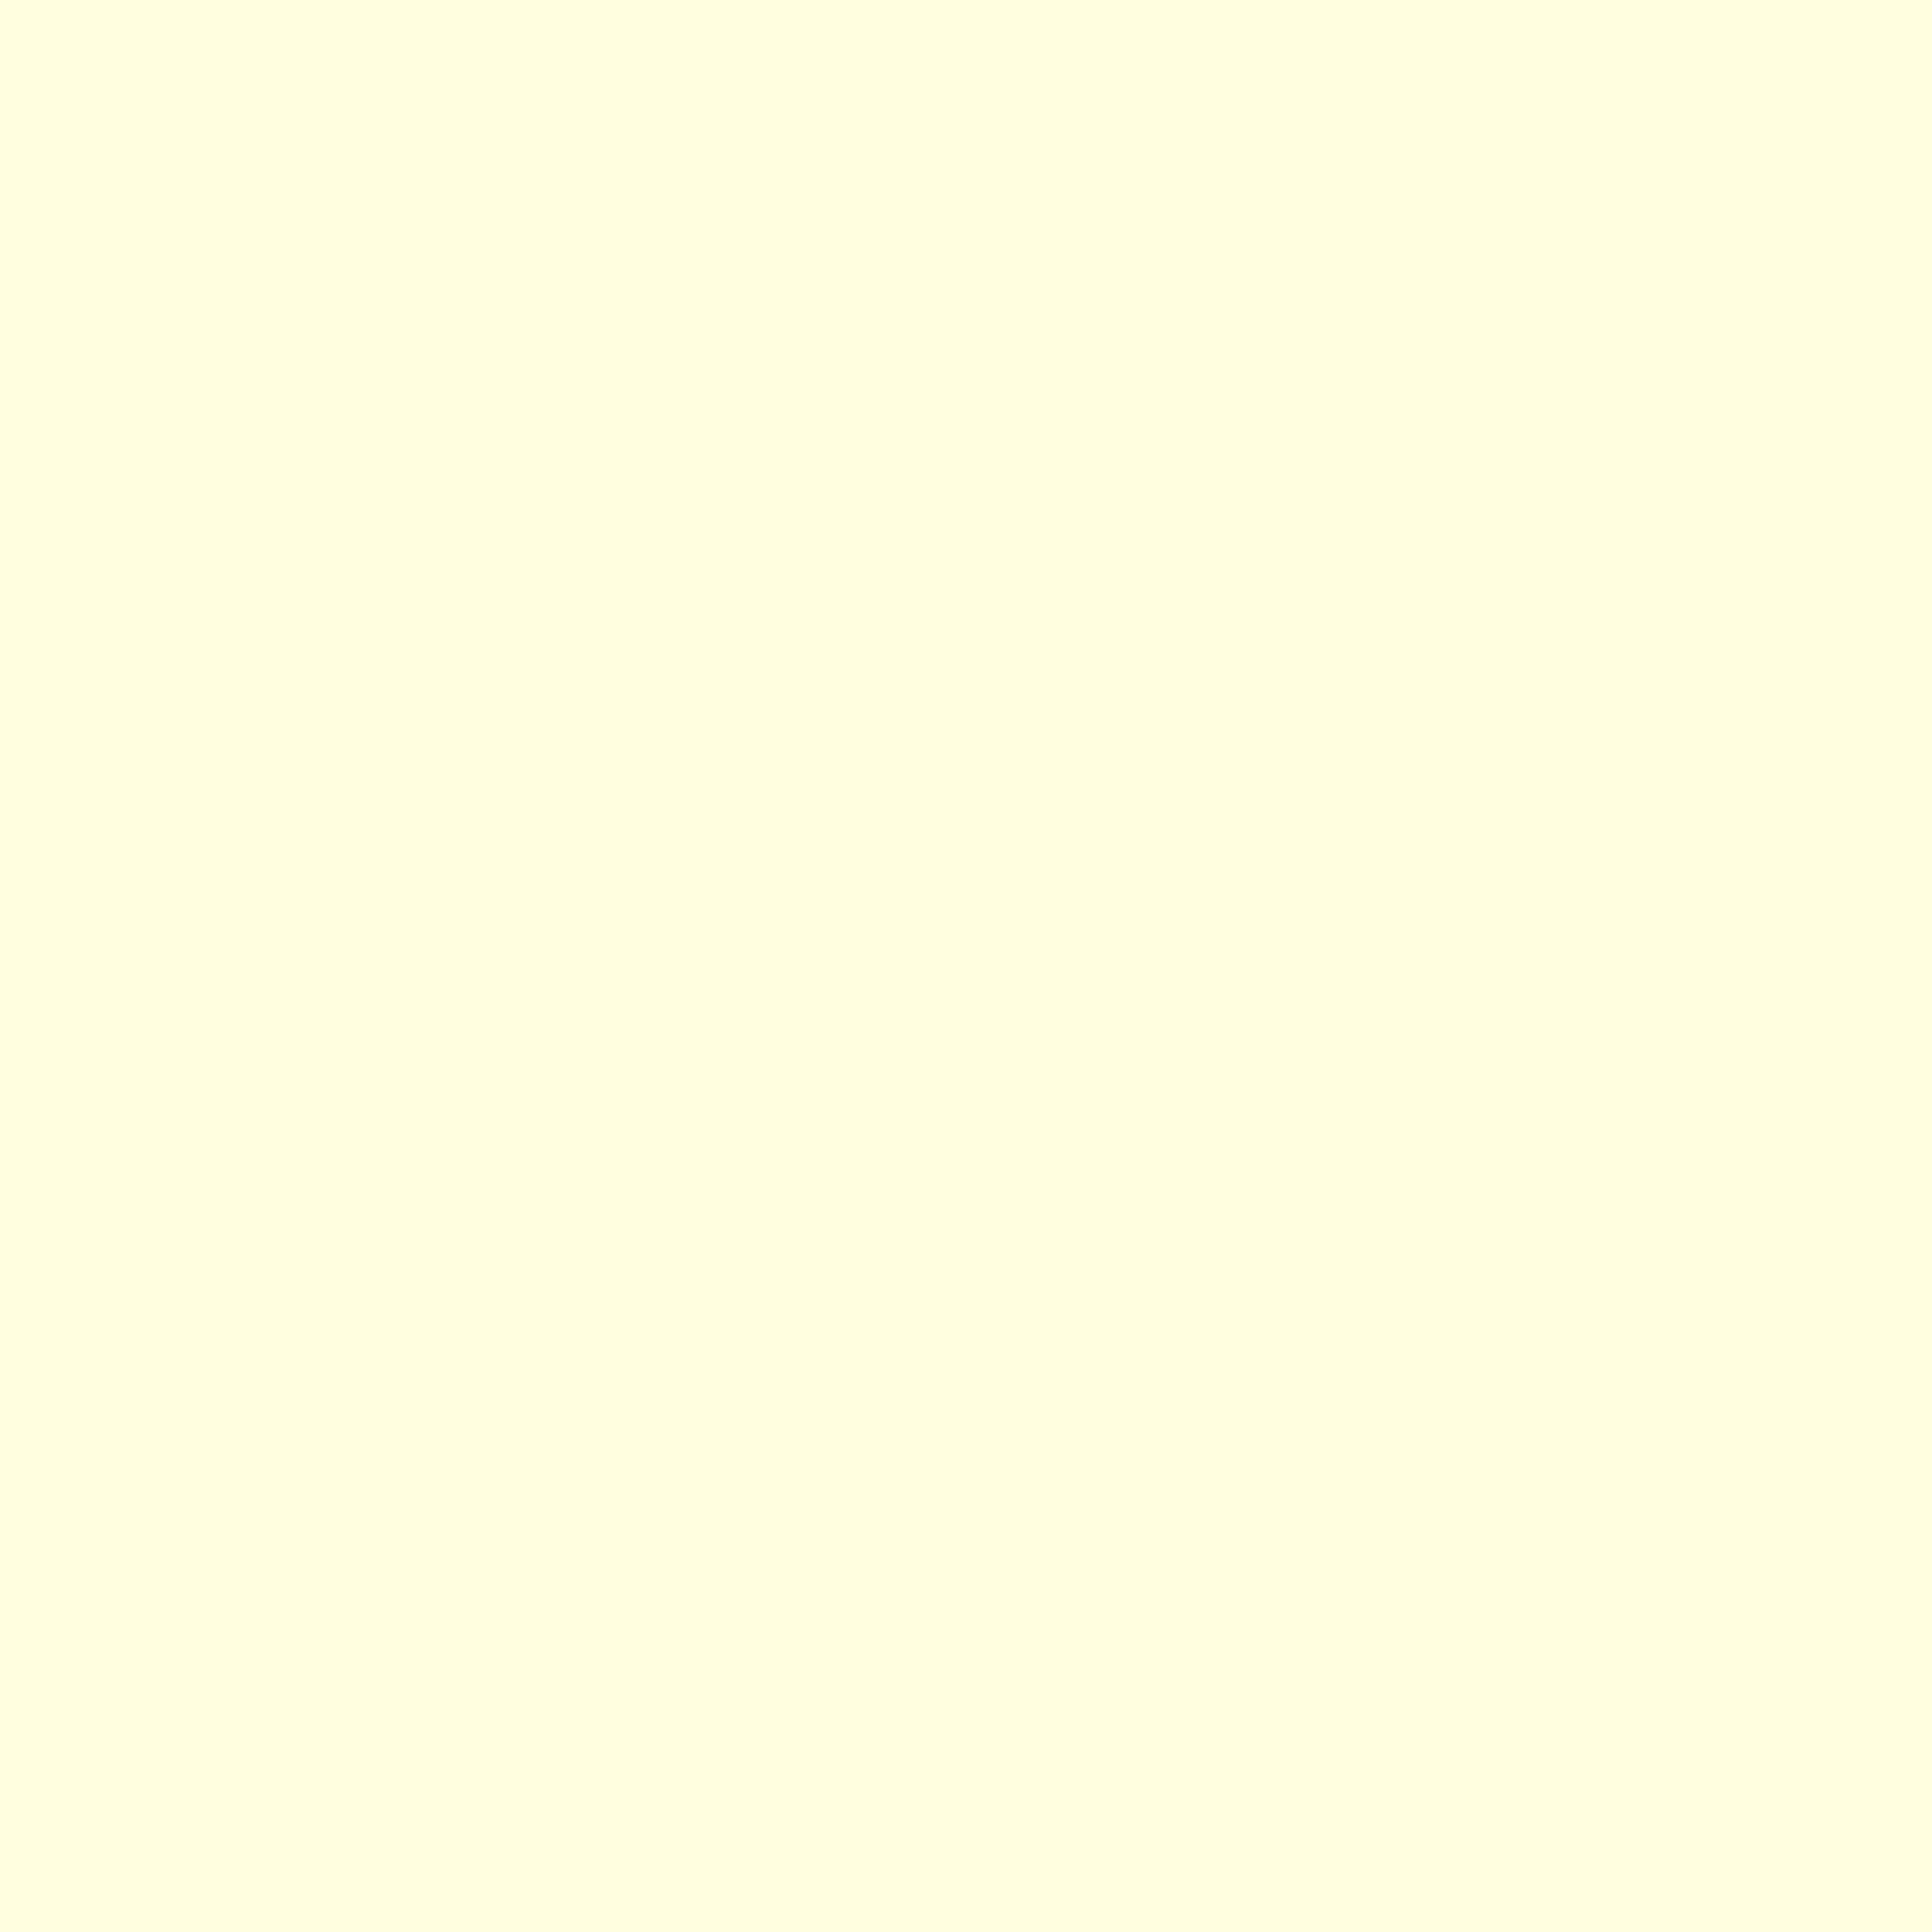 2732x2732 Light Yellow Solid Color Background